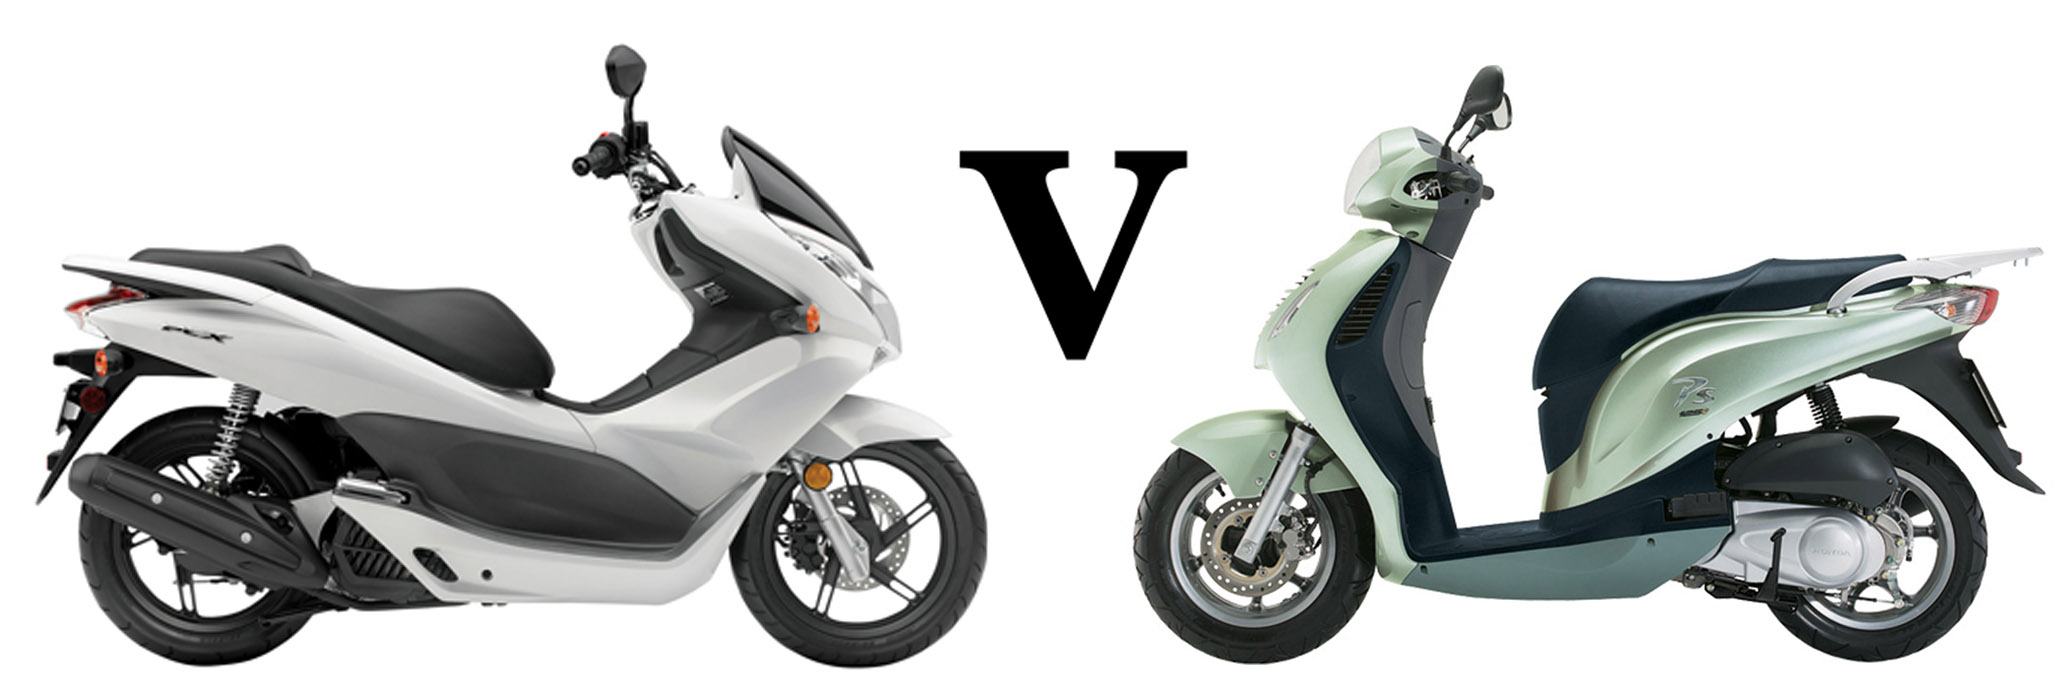 Versus: Honda PCX125 vs Honda PS125i